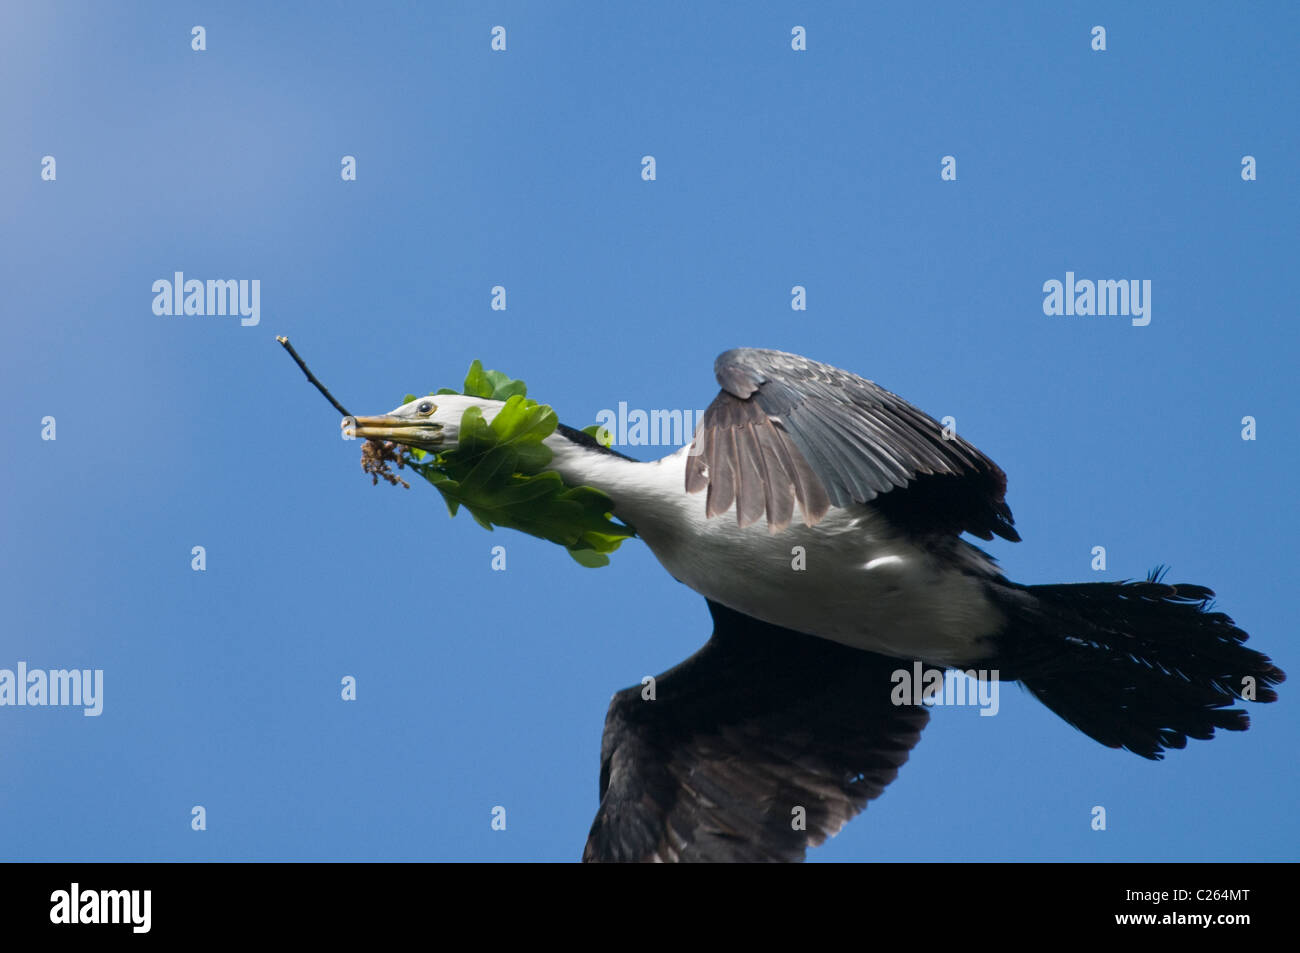 A Shag carries nesting materials in its beak - Stock Image